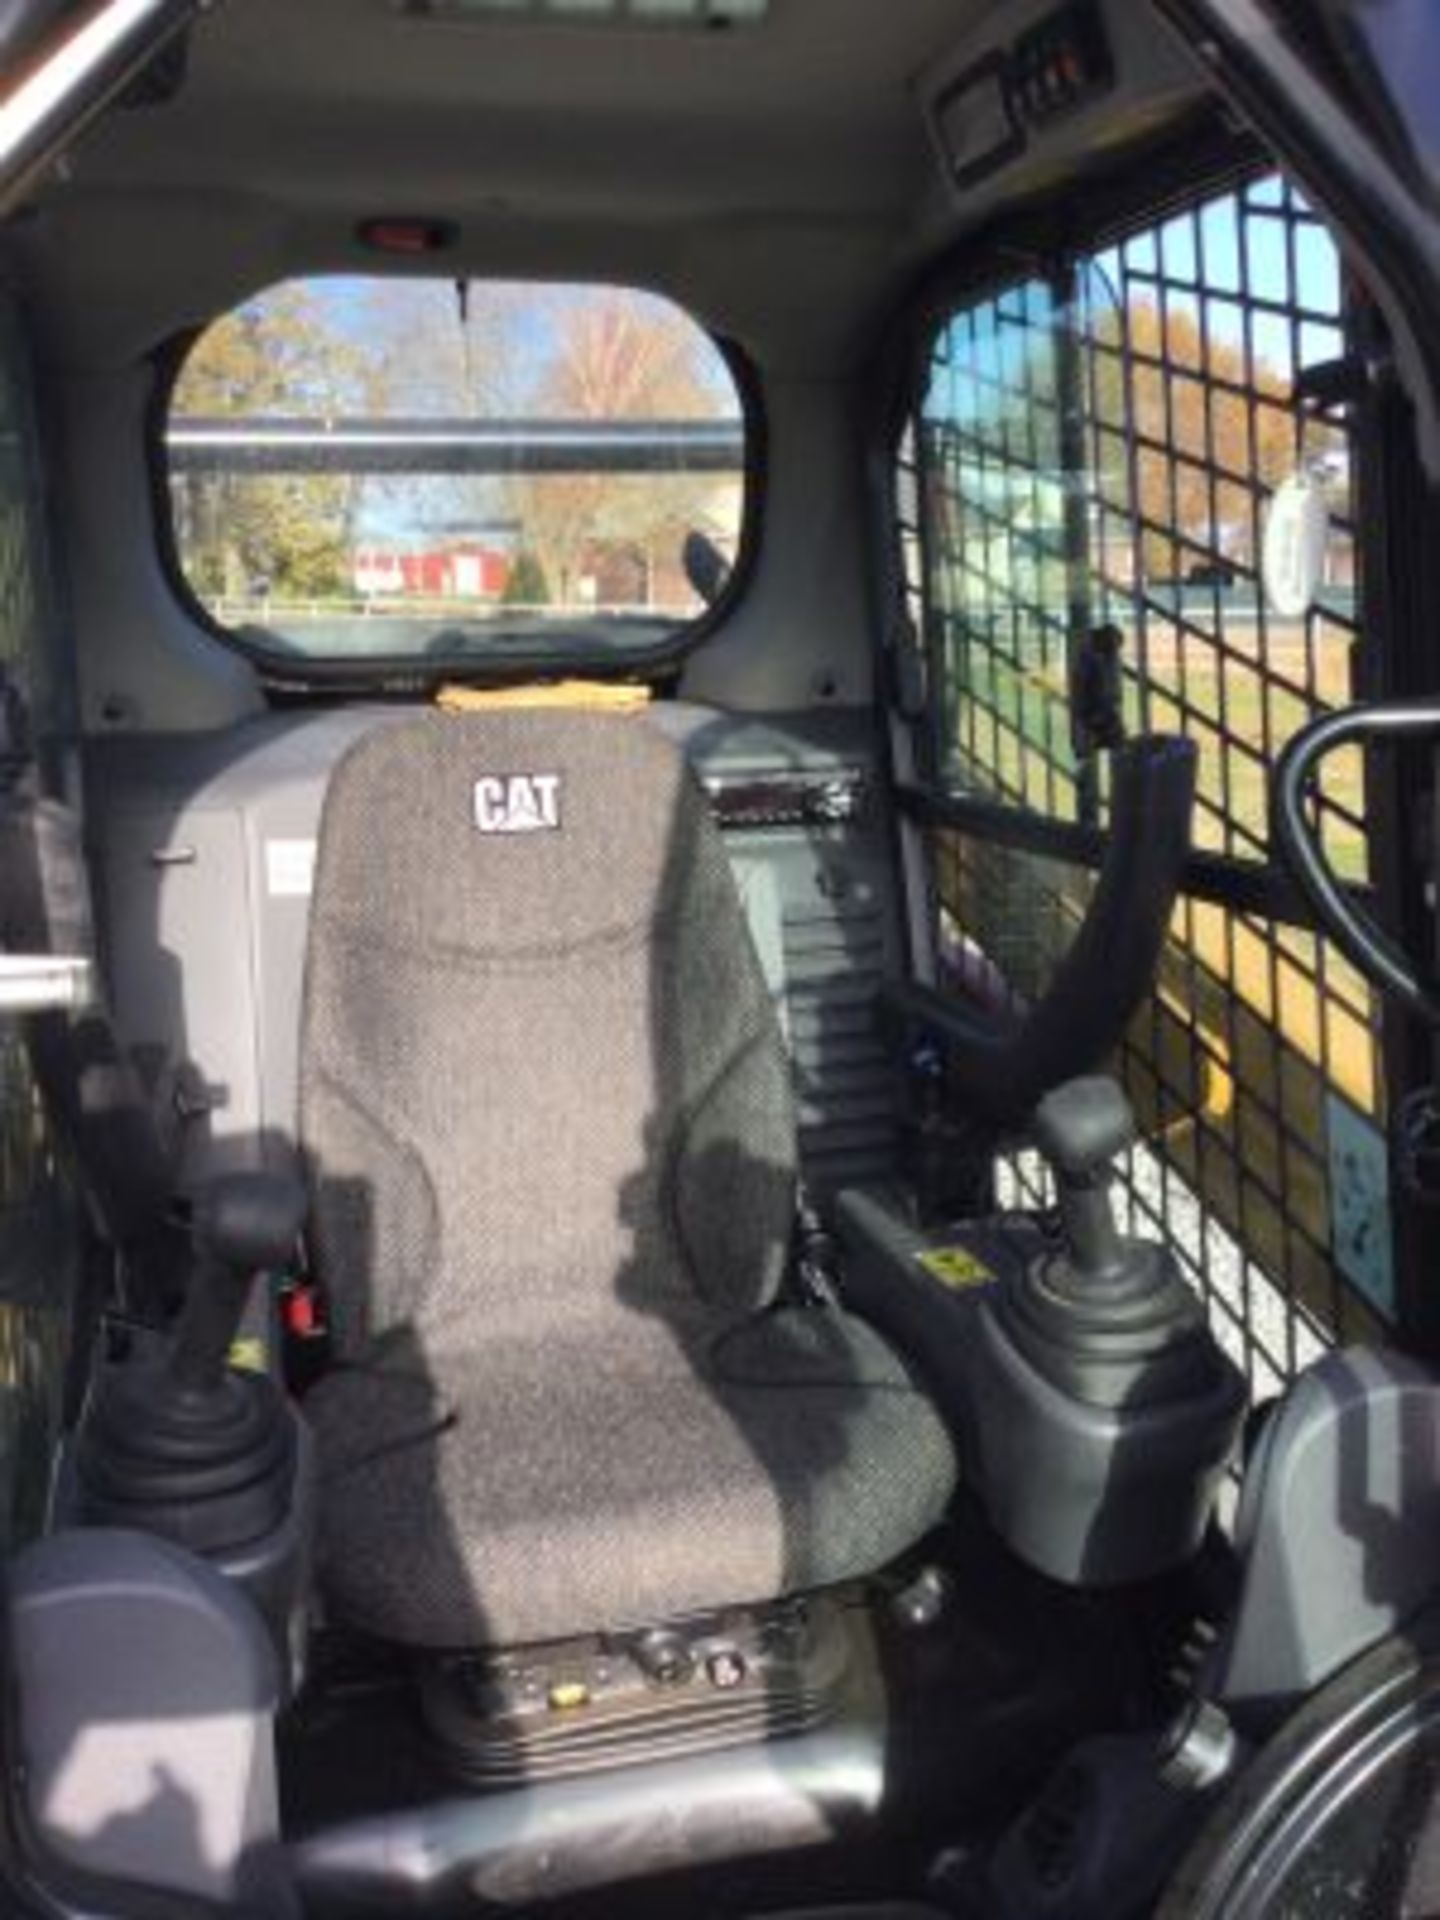 2018 CATERPILLAR 242D SKIDSTEER LOOKS NEW - Image 5 of 12